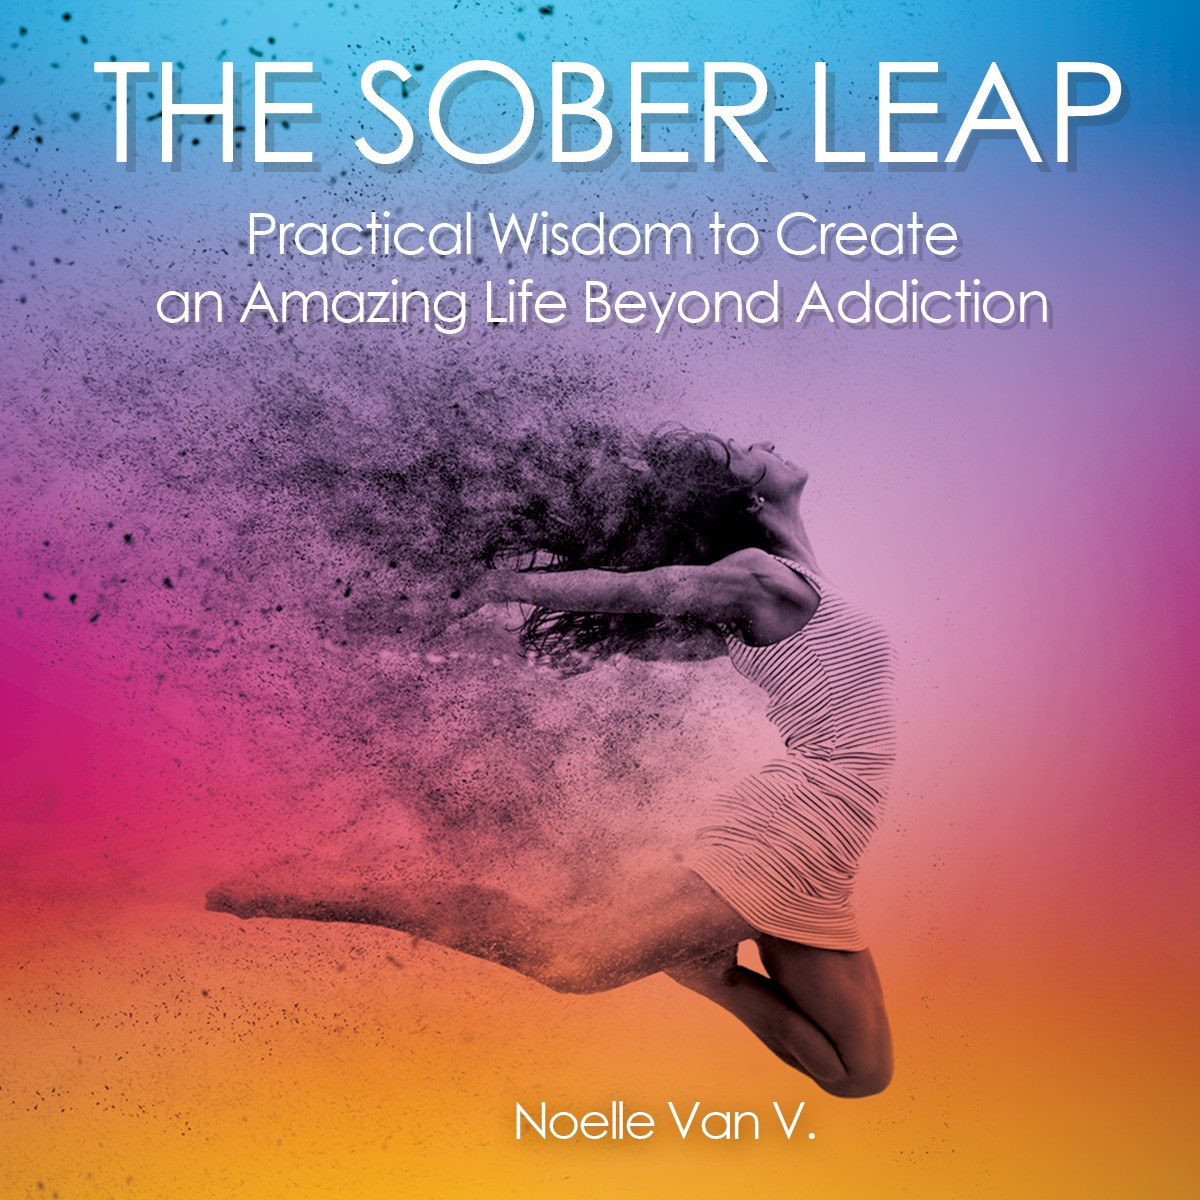 The Sober Leap - Book Cover Revisions